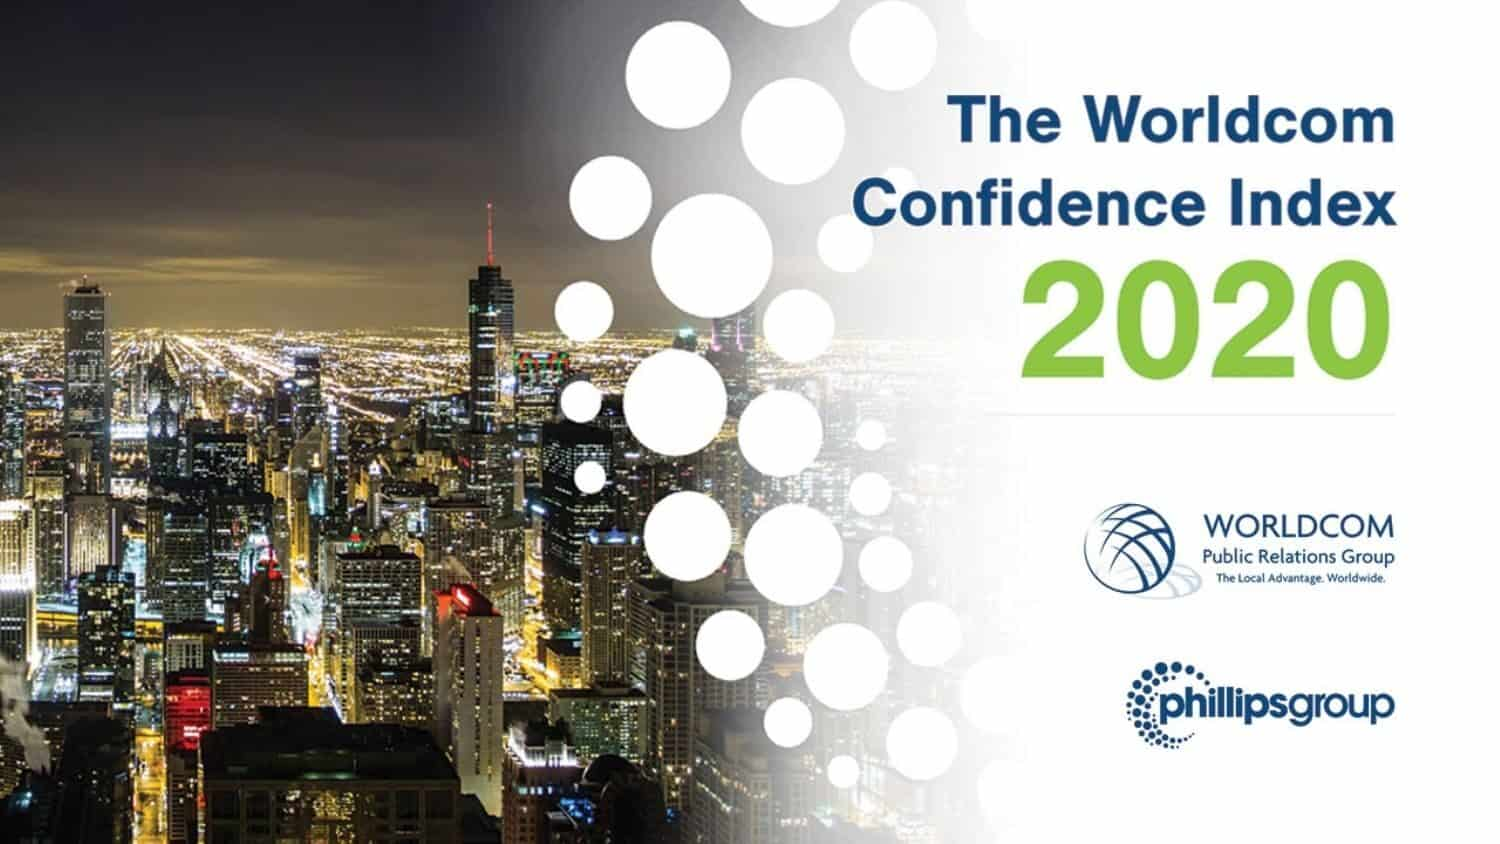 Trends and Insights from the Worldcom Confidence Index 2020